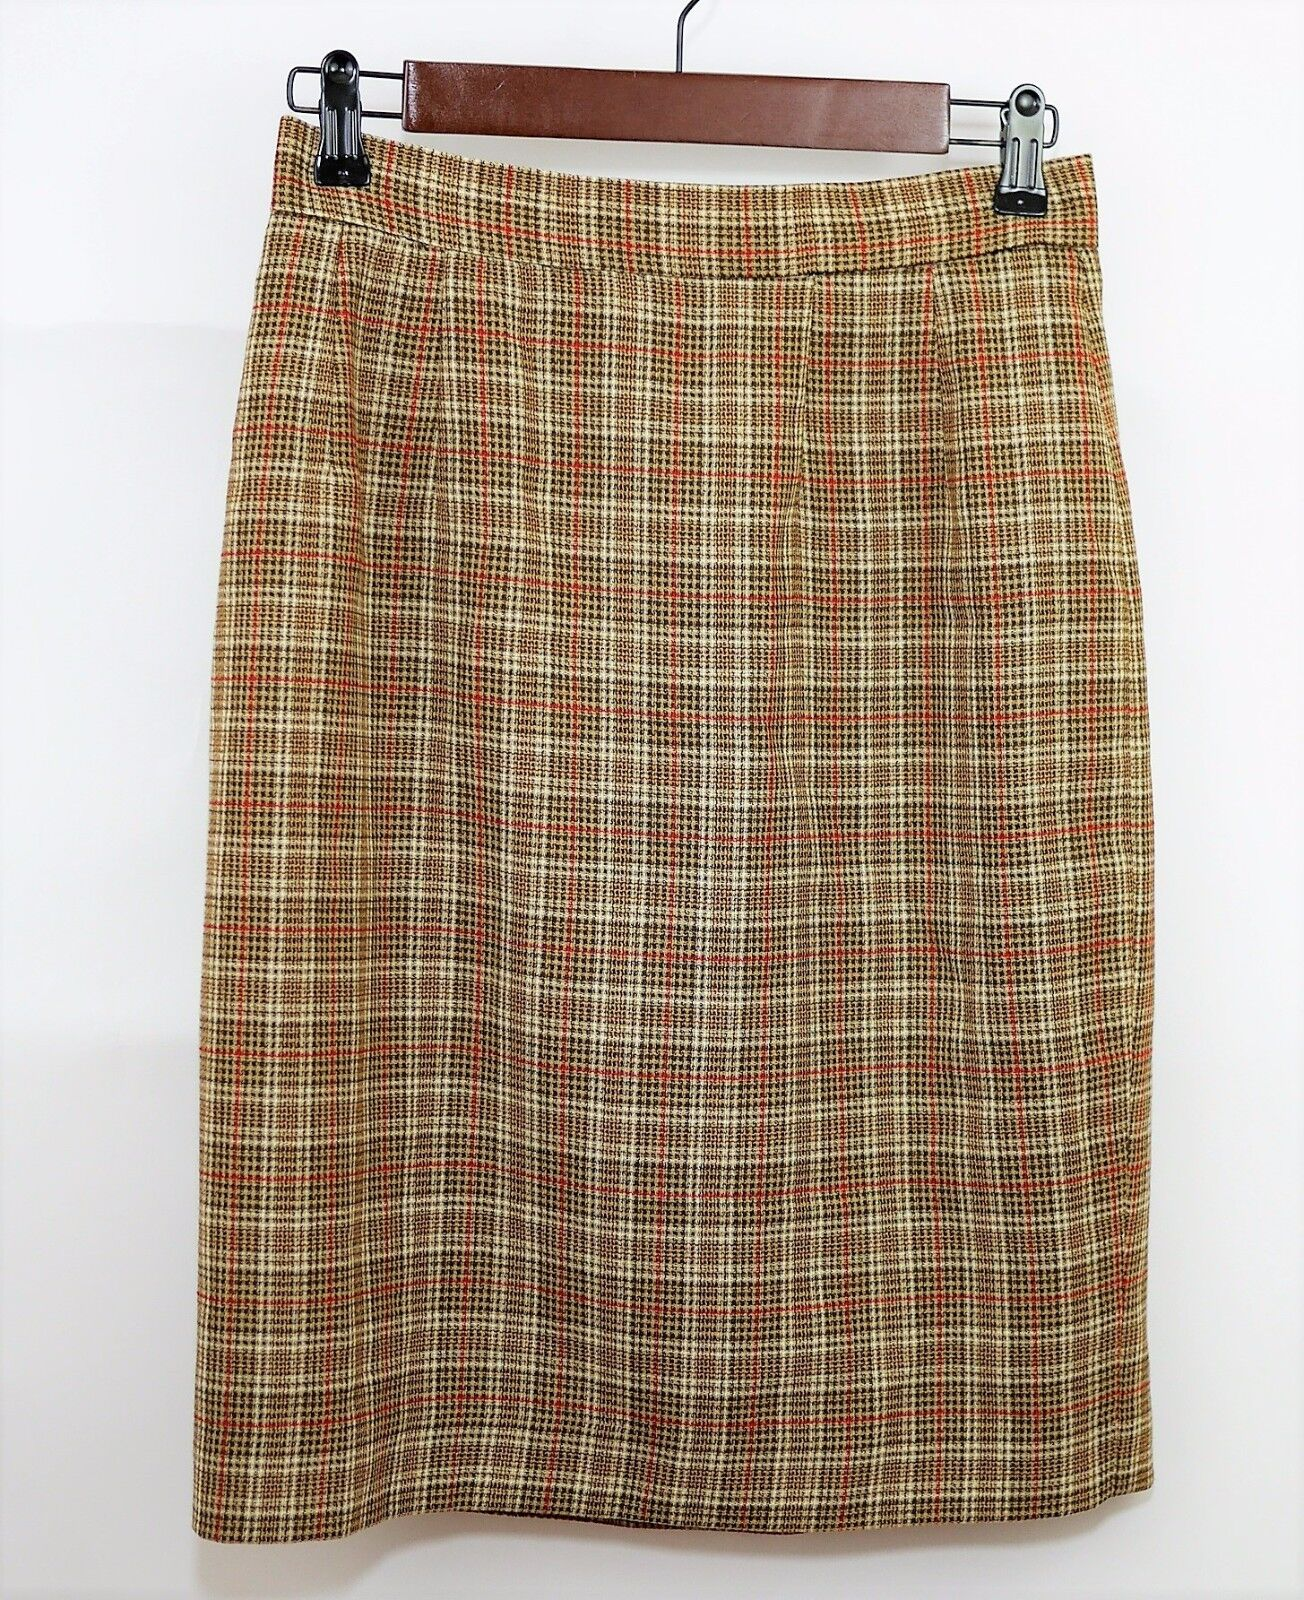 TAHARI Women's 8 - 100% WOOL BROWN & RED PLAID STRAIGHT SKIRT  Knee Length Lined